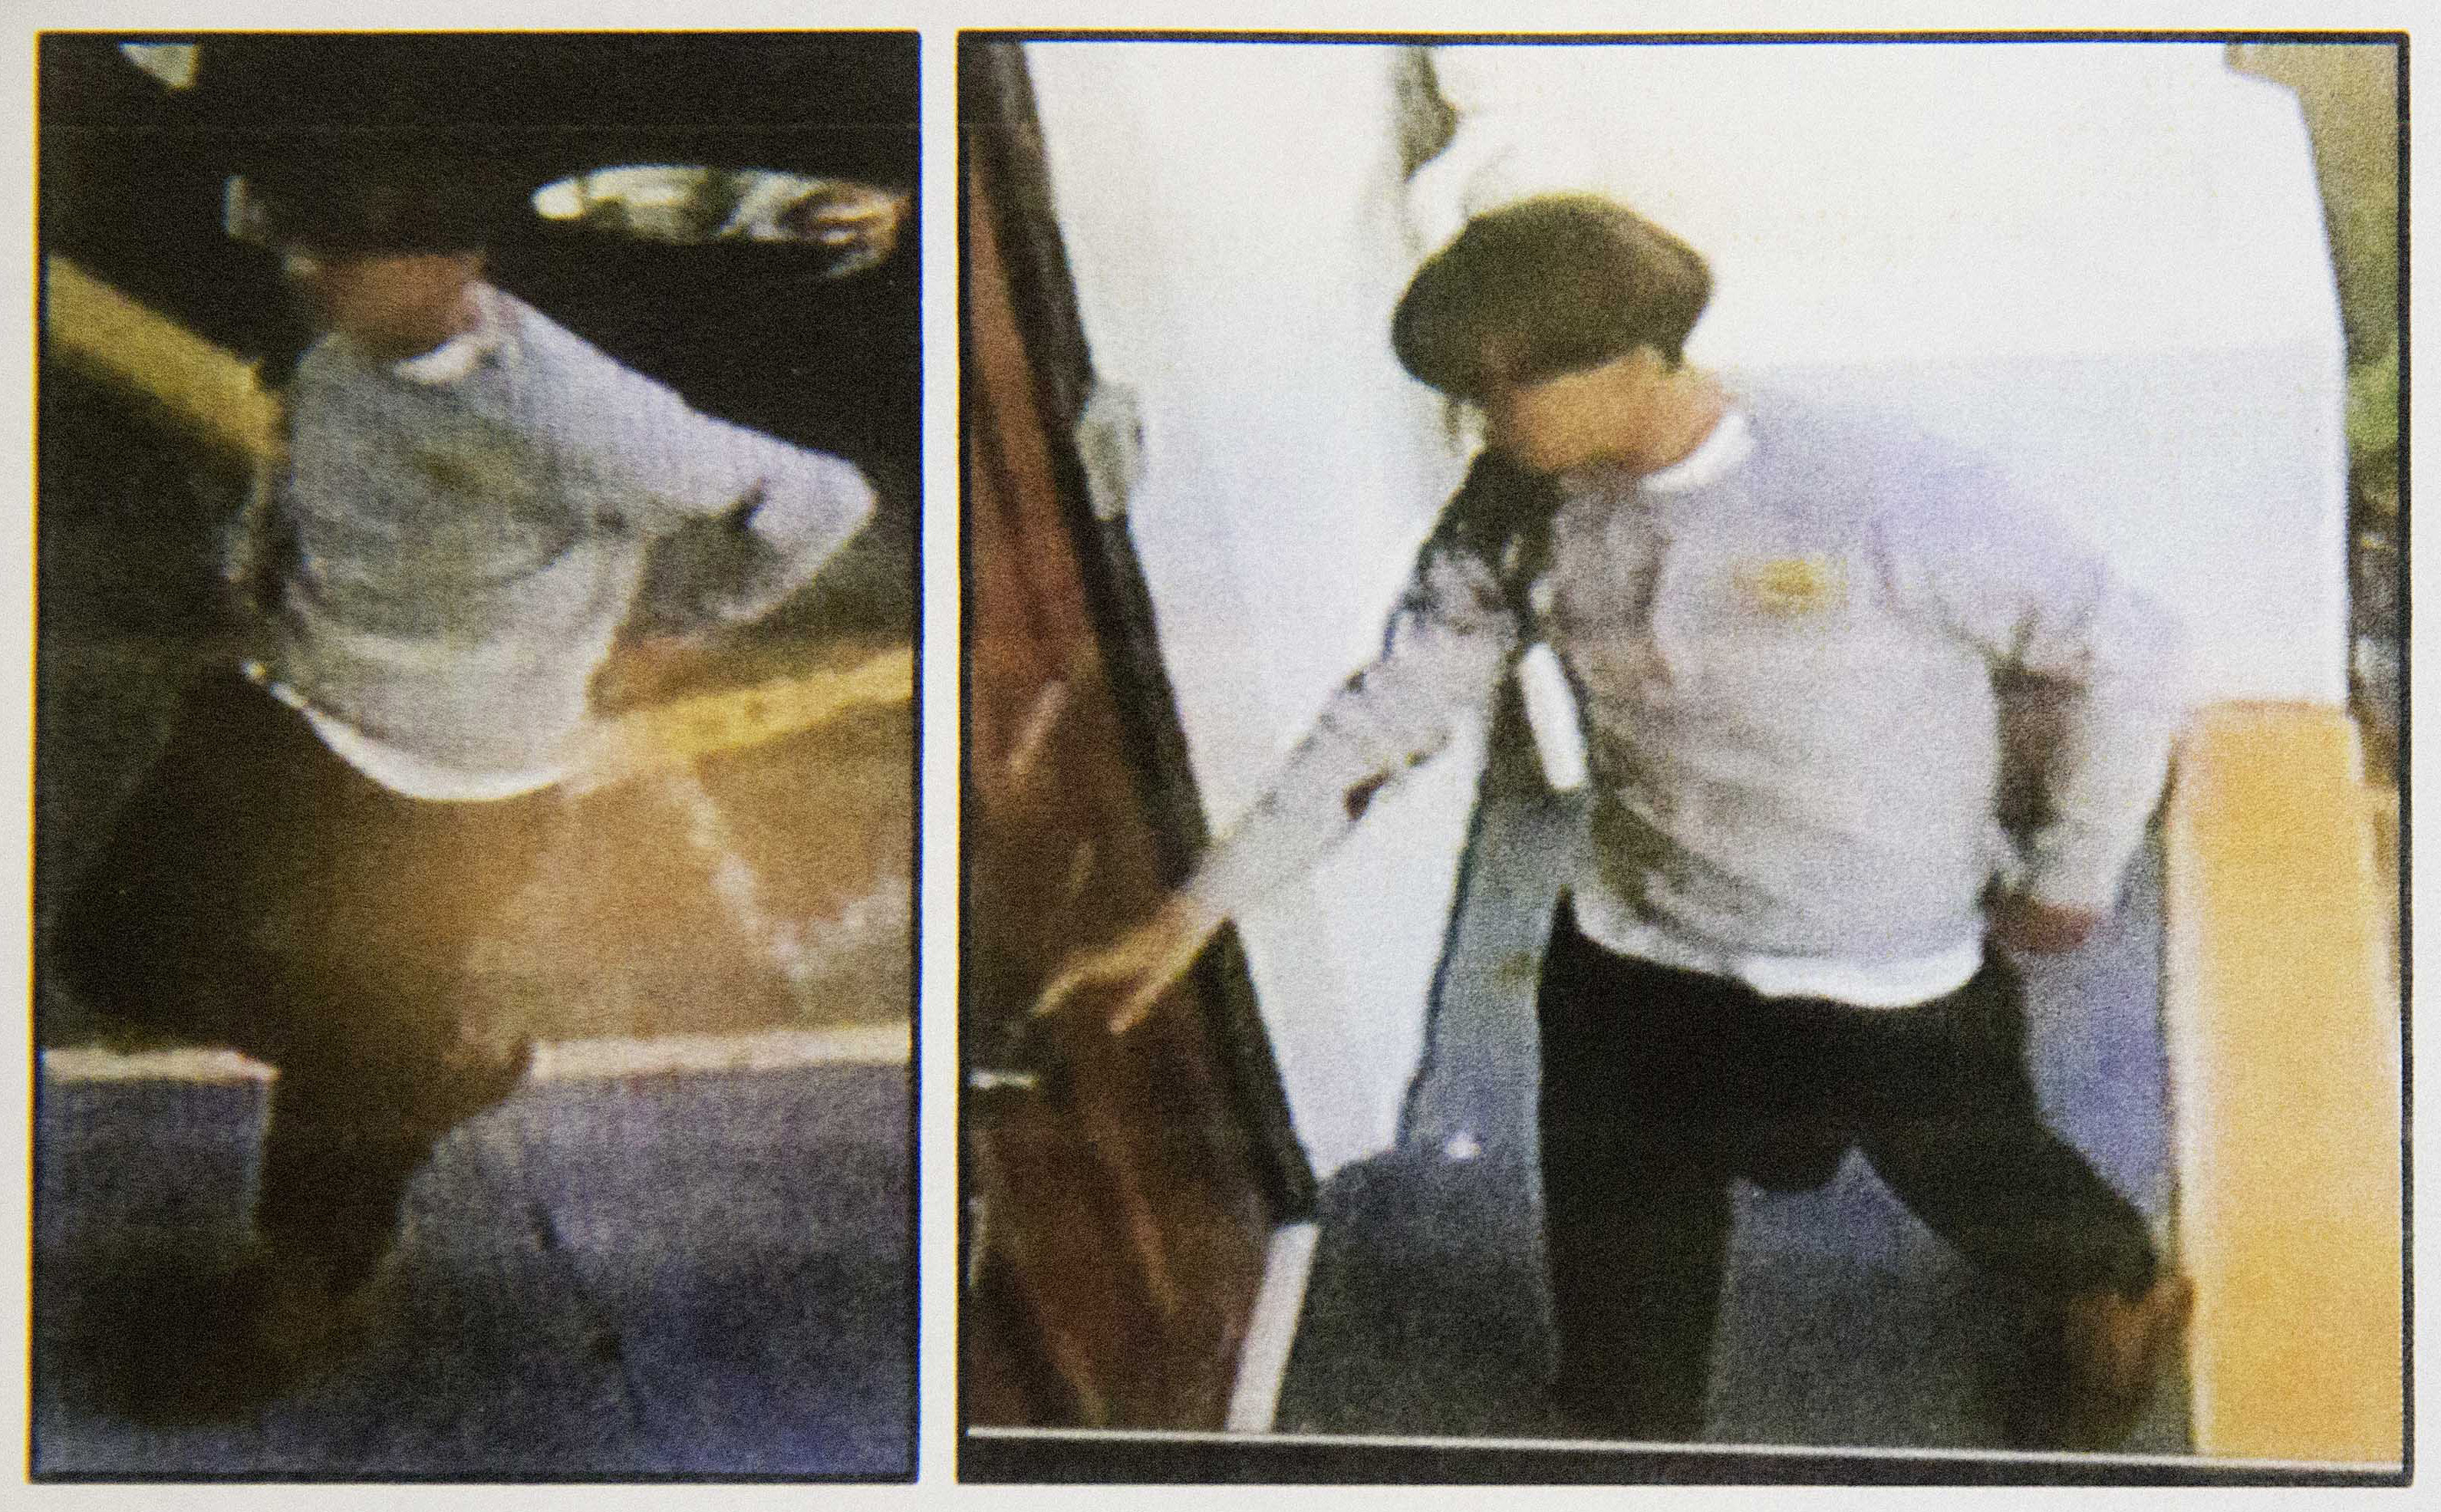 Charleston Sc Hate Crime Image Of Suspect In Mass